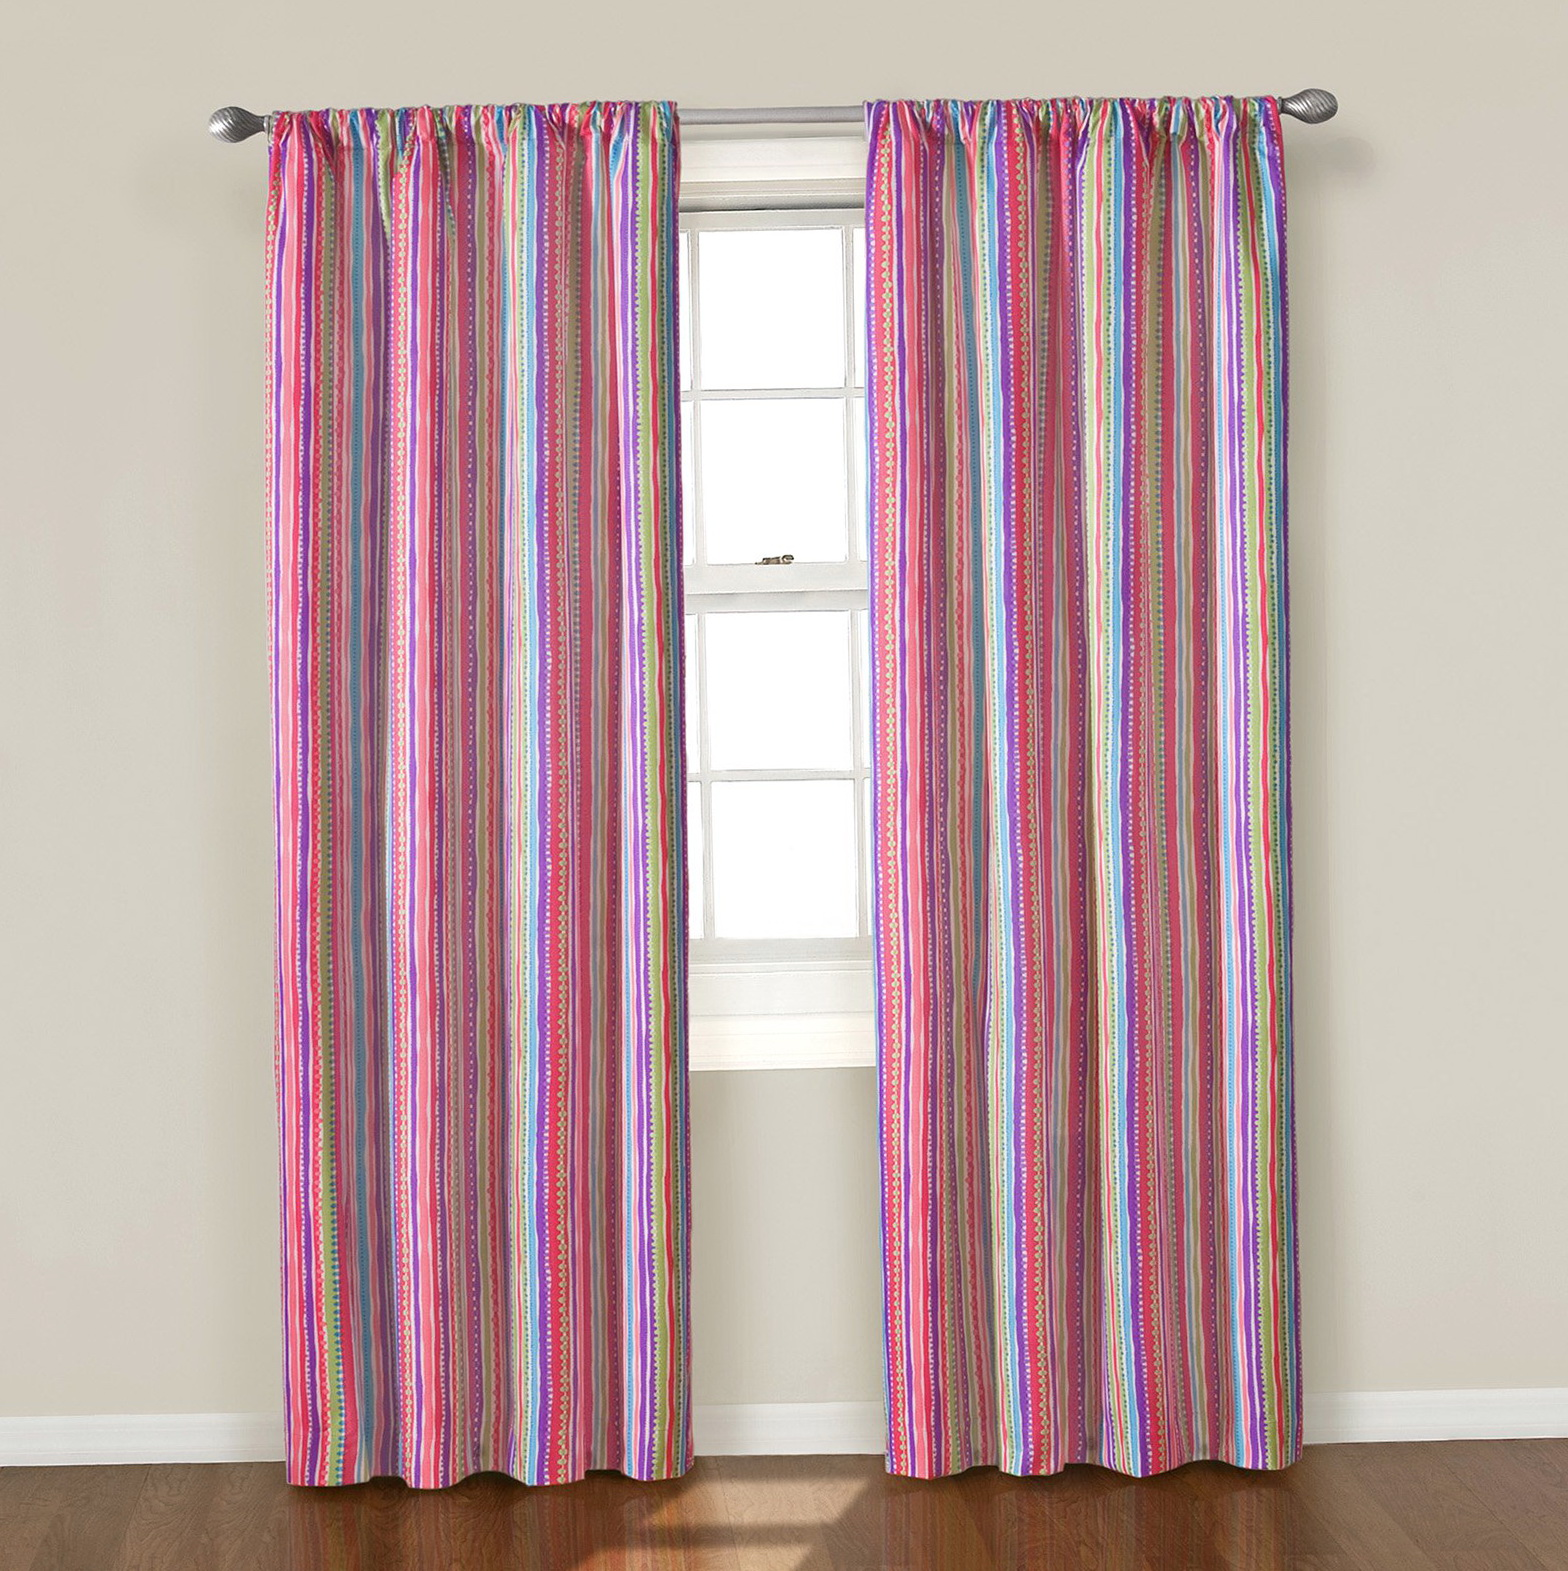 Room Darkening Curtains Bed Bath And Beyond Home Design Ideas